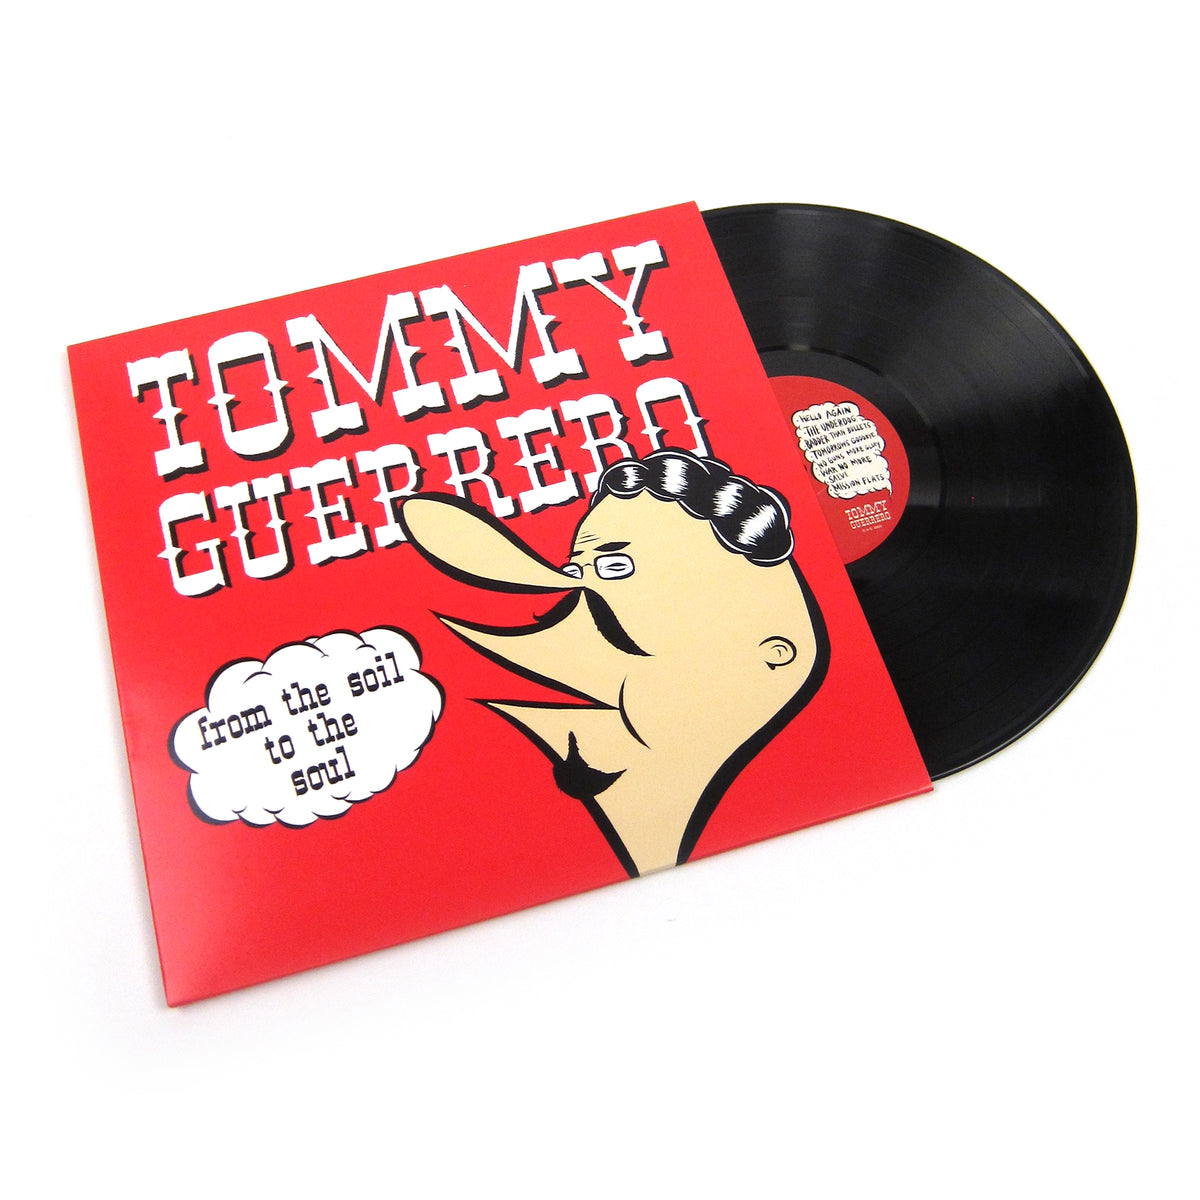 Tommy Guerrero: From The Soil To The Soul (180g) Vinyl LP